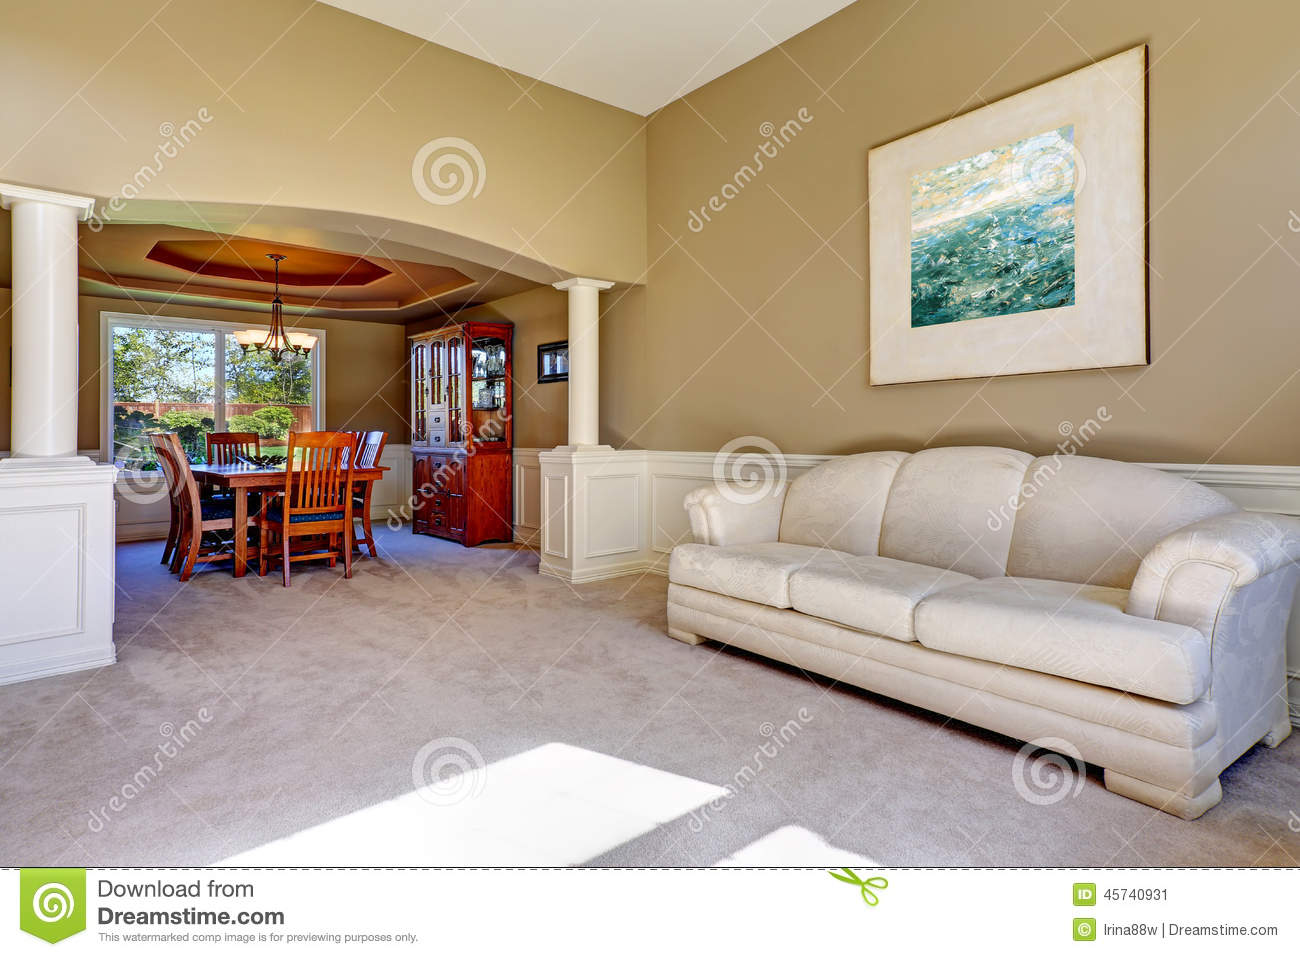 Luxury House Interior With White Columns Stock Image